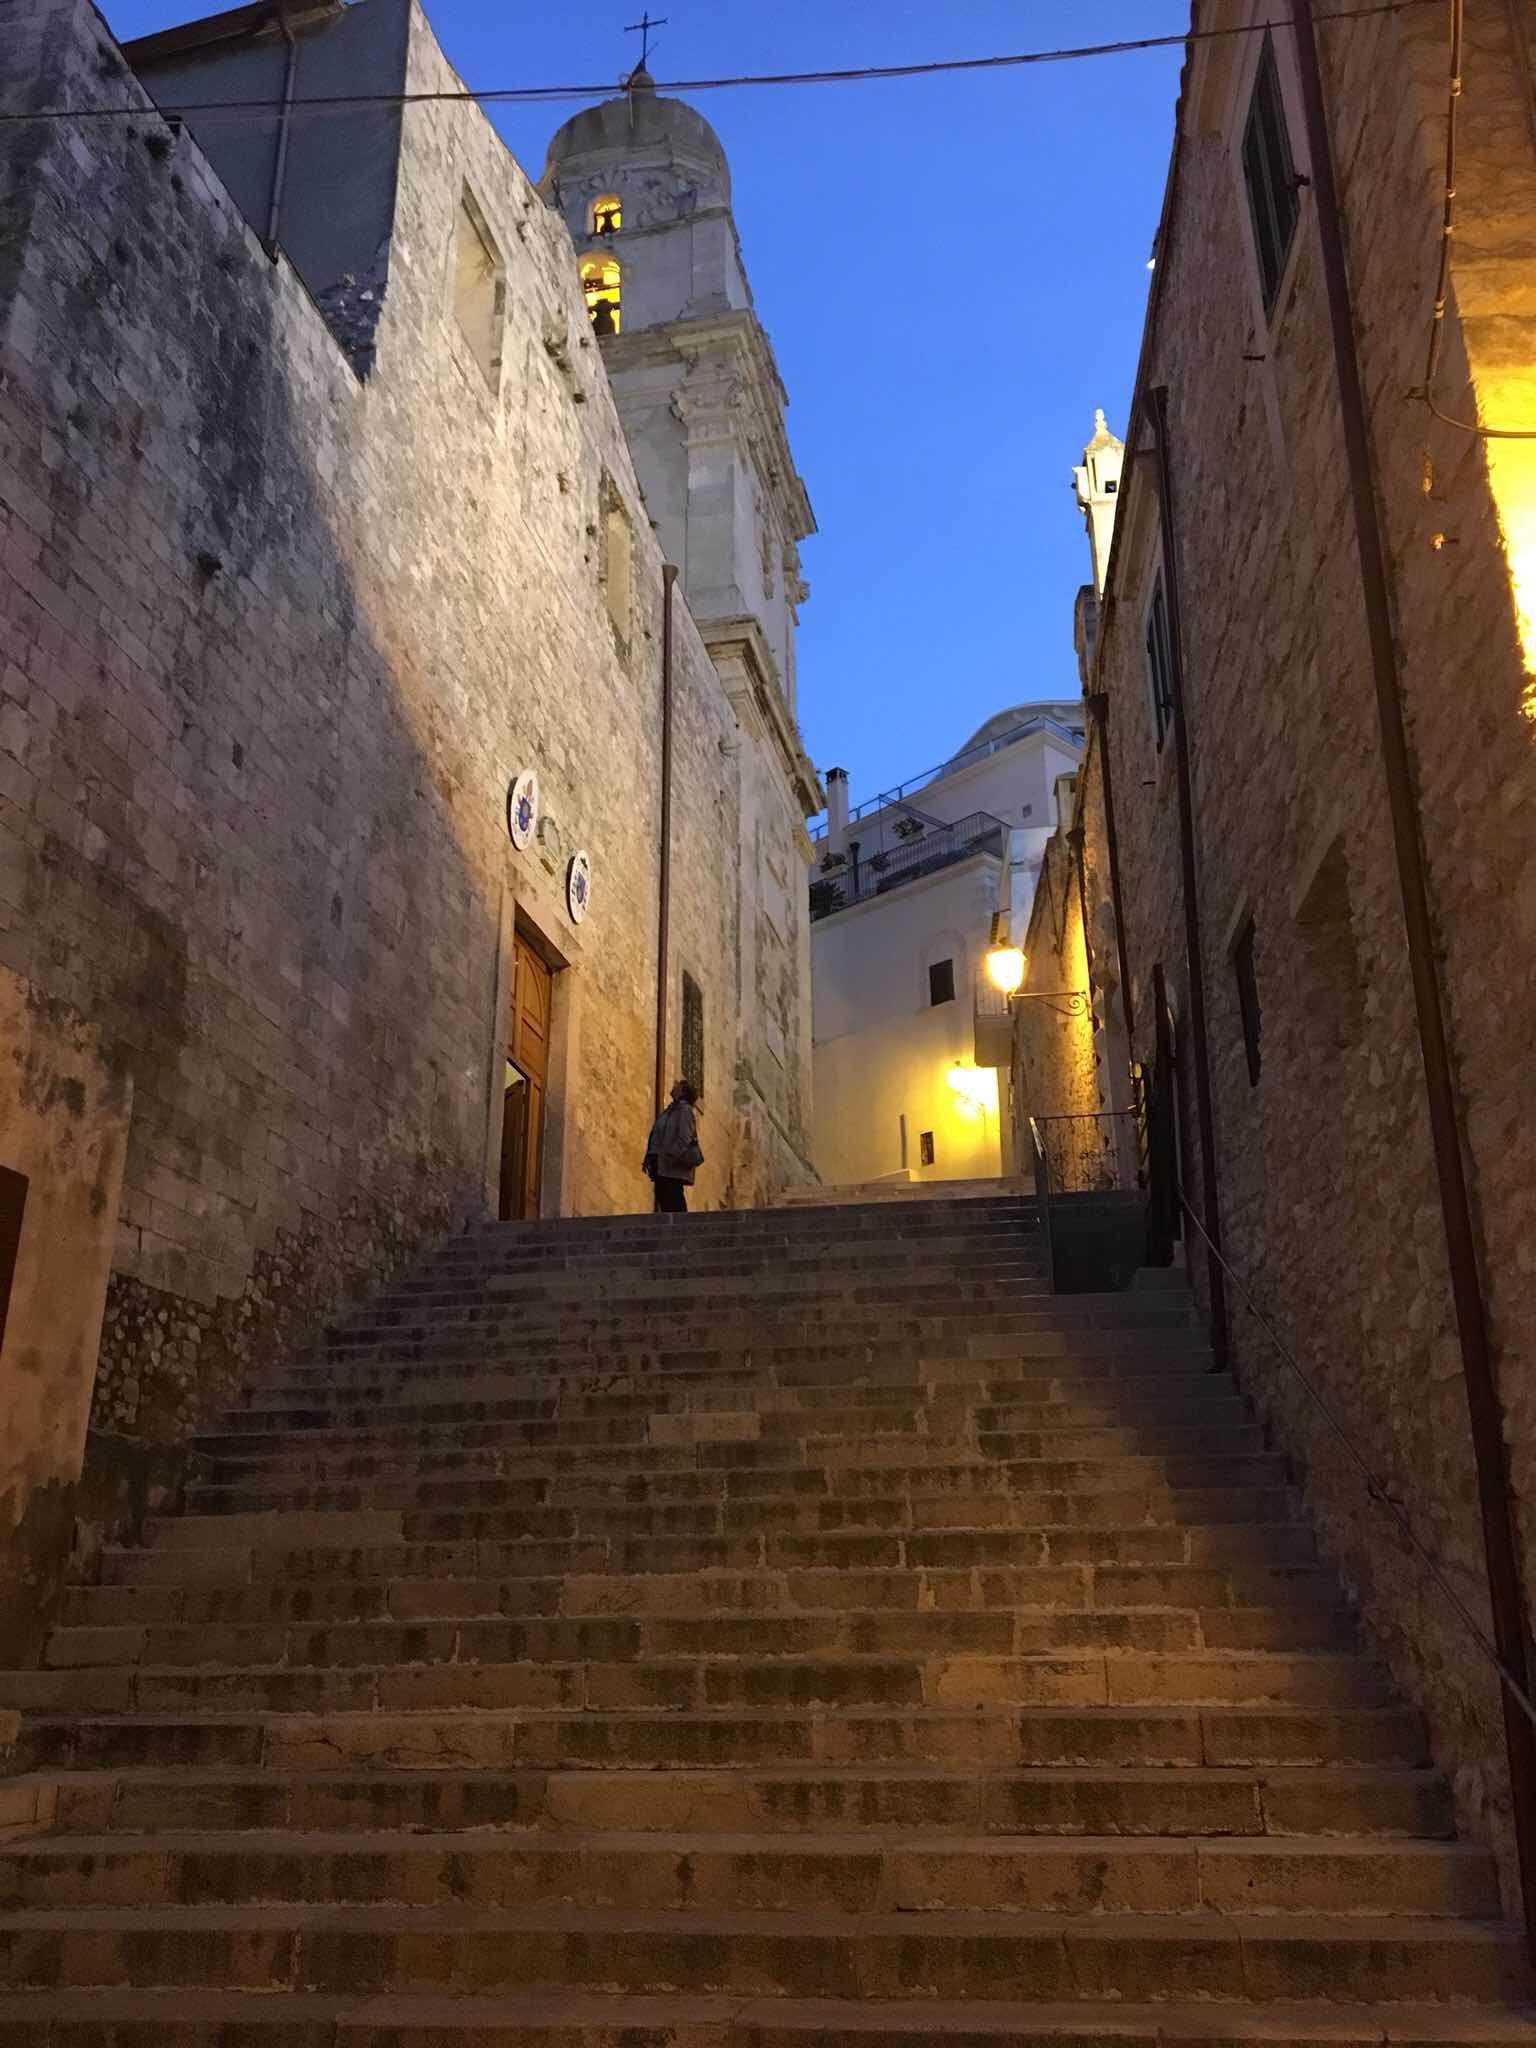 street lights, ancient stone stairs and walls in Vieste, Italy